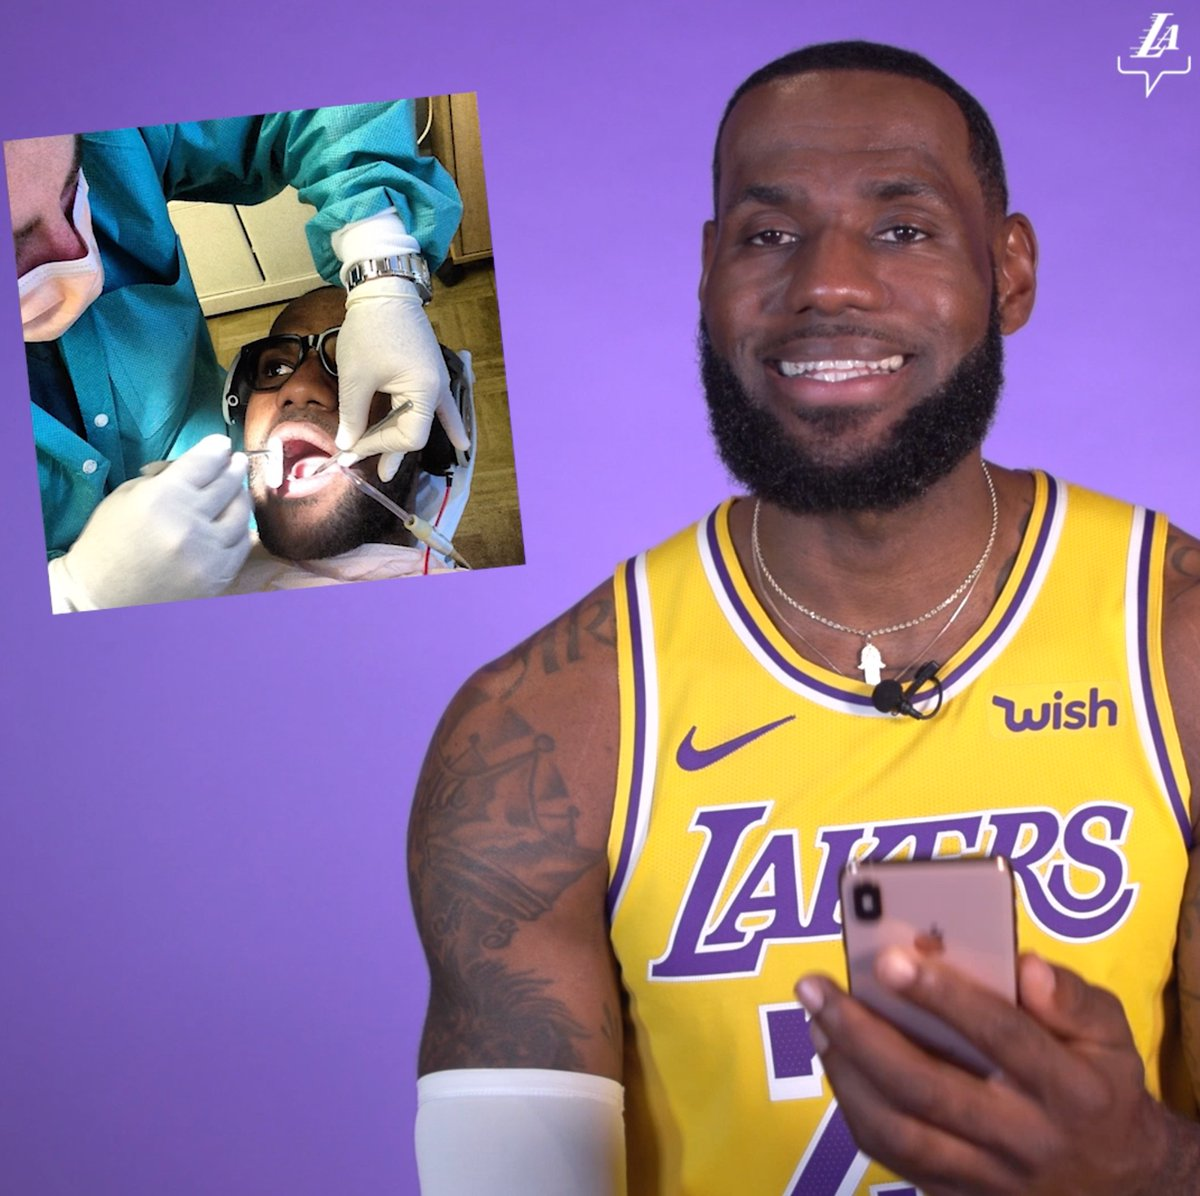 Replying to @Lakers:  *** 😅😅 @KingJames and @AntDavis23 dig into the archives to explain their long-lost IG photos.  #LosAngeles #LosAngelesLakers #Lakers #LeBronJames #StriveForGreatness #NBA #NBAAllStar #TeamLeBron